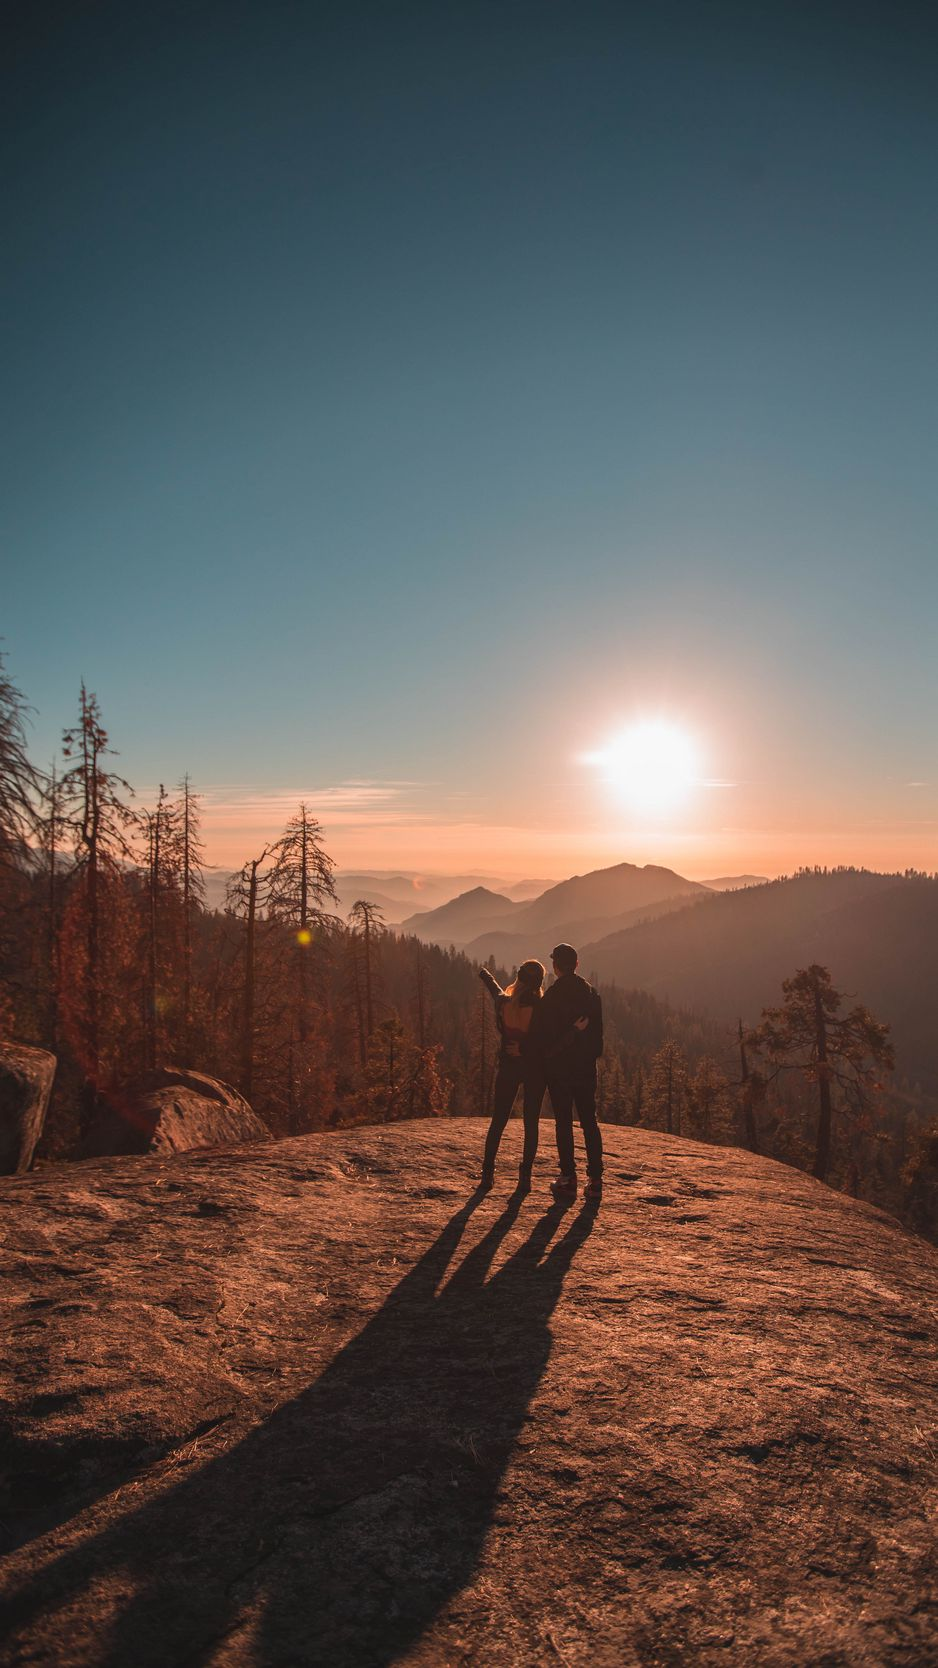 938x1668 Wallpaper couple, mountains, travel, sunset, sequoia national park, united states